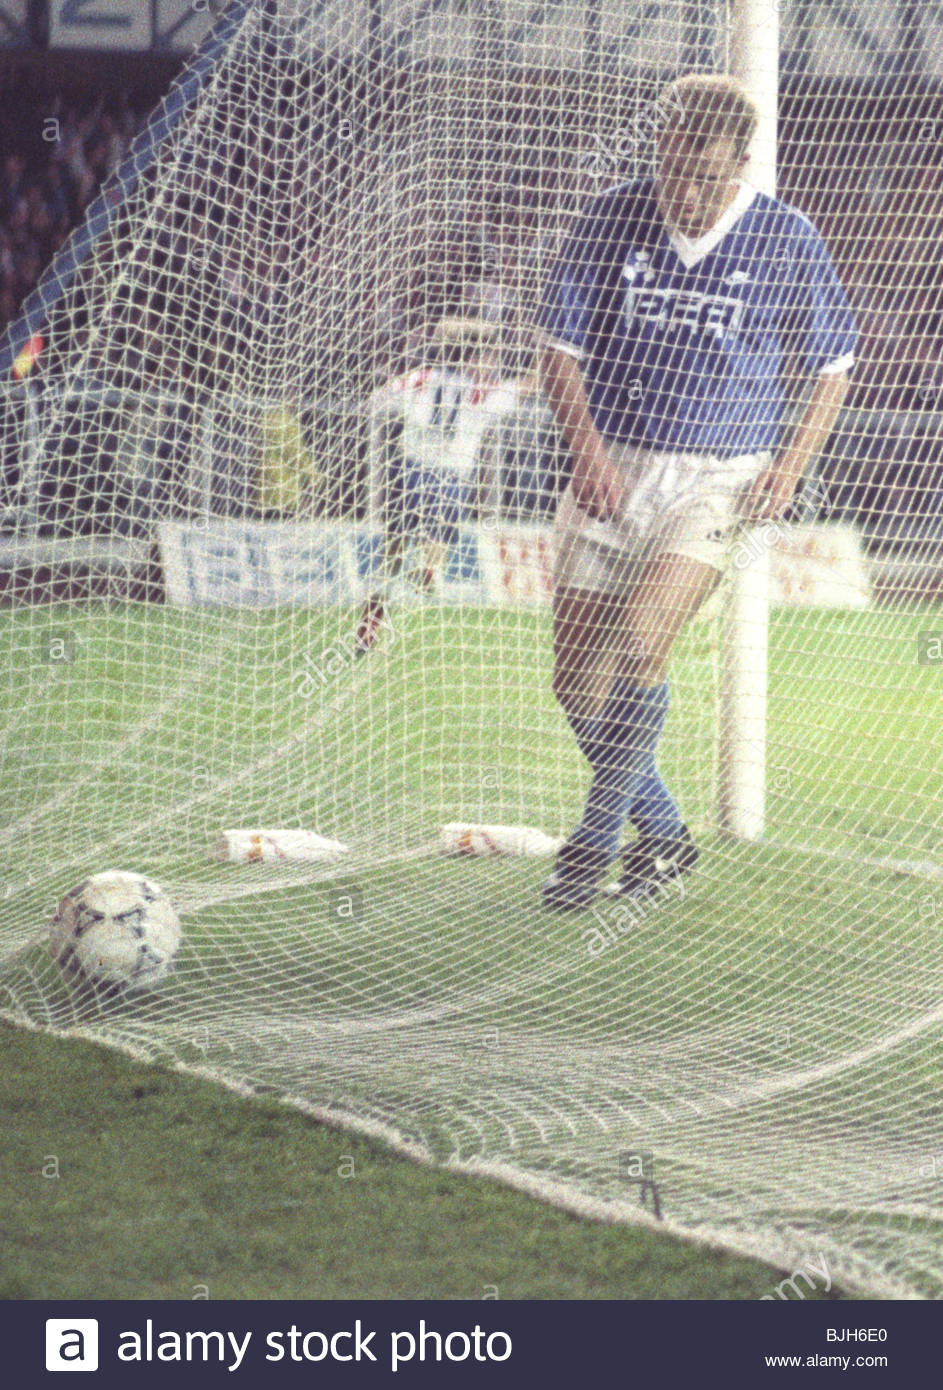 16/09/92 EUROPEAN CUP FIRST ROUND FIRST LEG RANGERS V LYNGBY BK (2-0) IBROX - GLASGOW Ranger's Peter Huistra - Stock Image